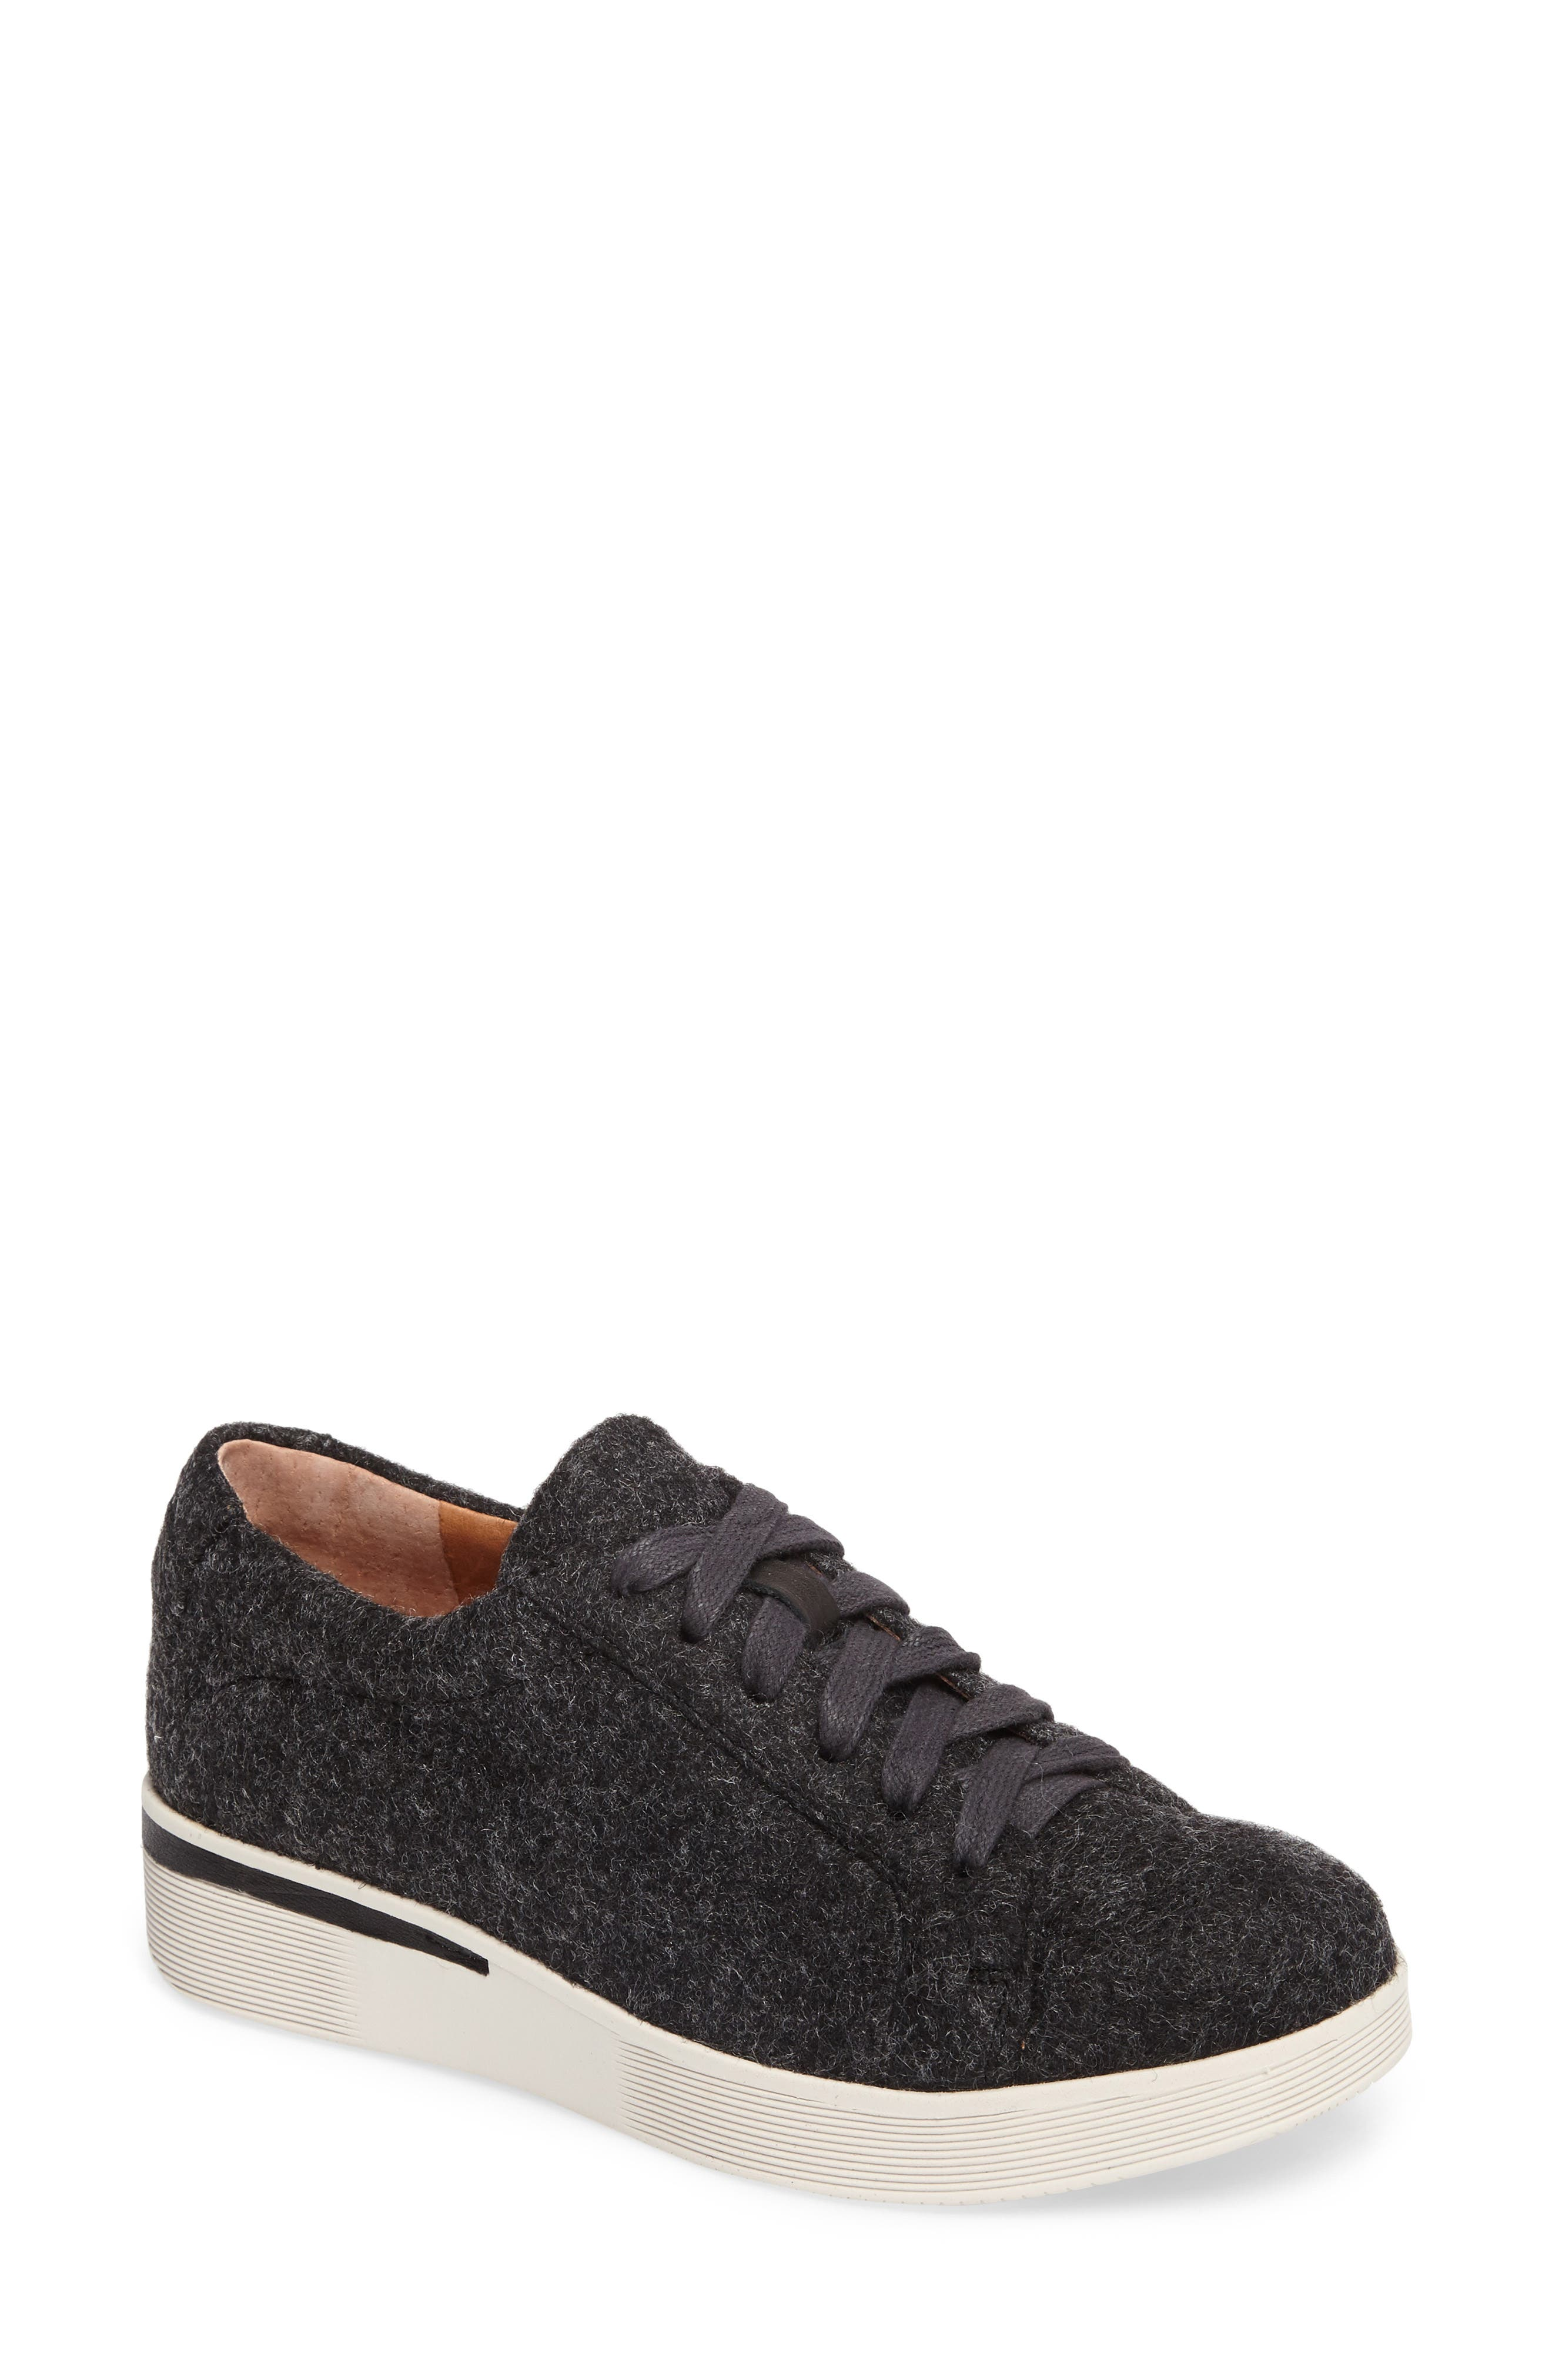 GENTLE SOULS BY KENNETH COLE, Haddie Low Platform Sneaker, Main thumbnail 1, color, HEATHER GREY WOOL